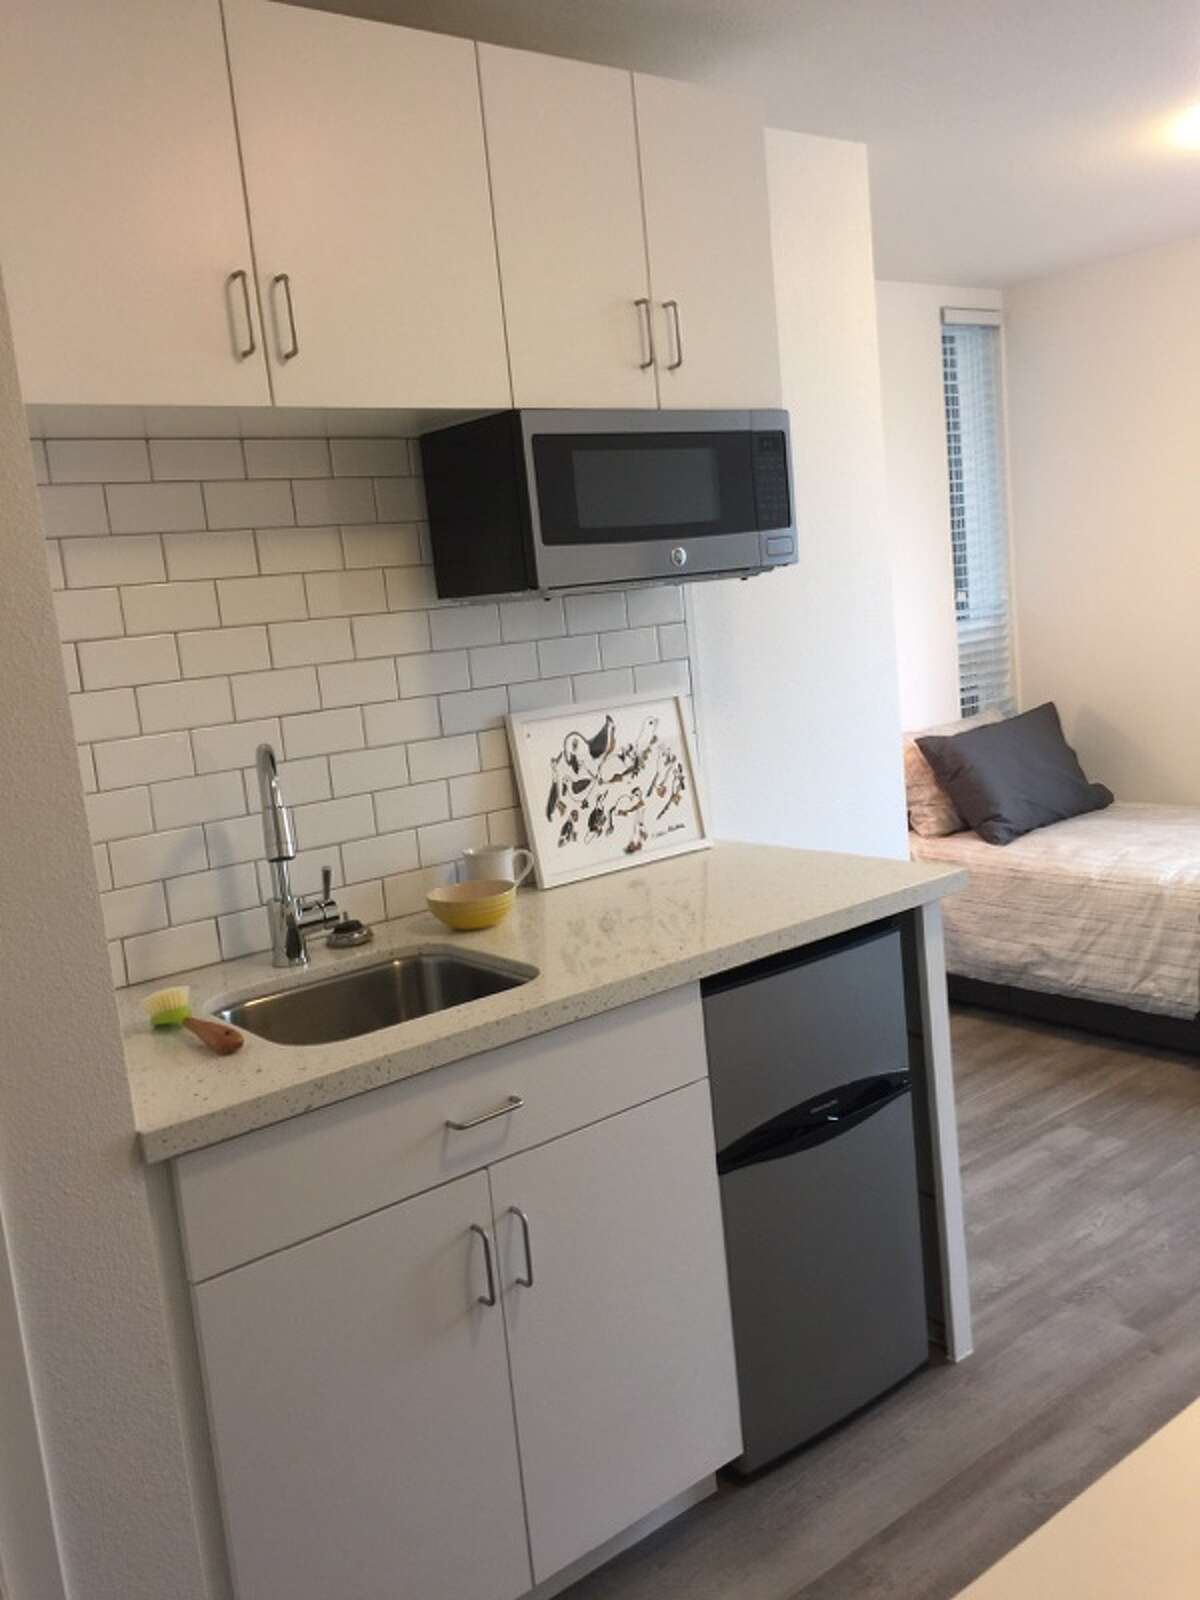 Each micro-apartment has a kitchenette with a mini-fridge and microwave. Any heavy-duty cooking will have to happen in the shared kitchen on each floor.